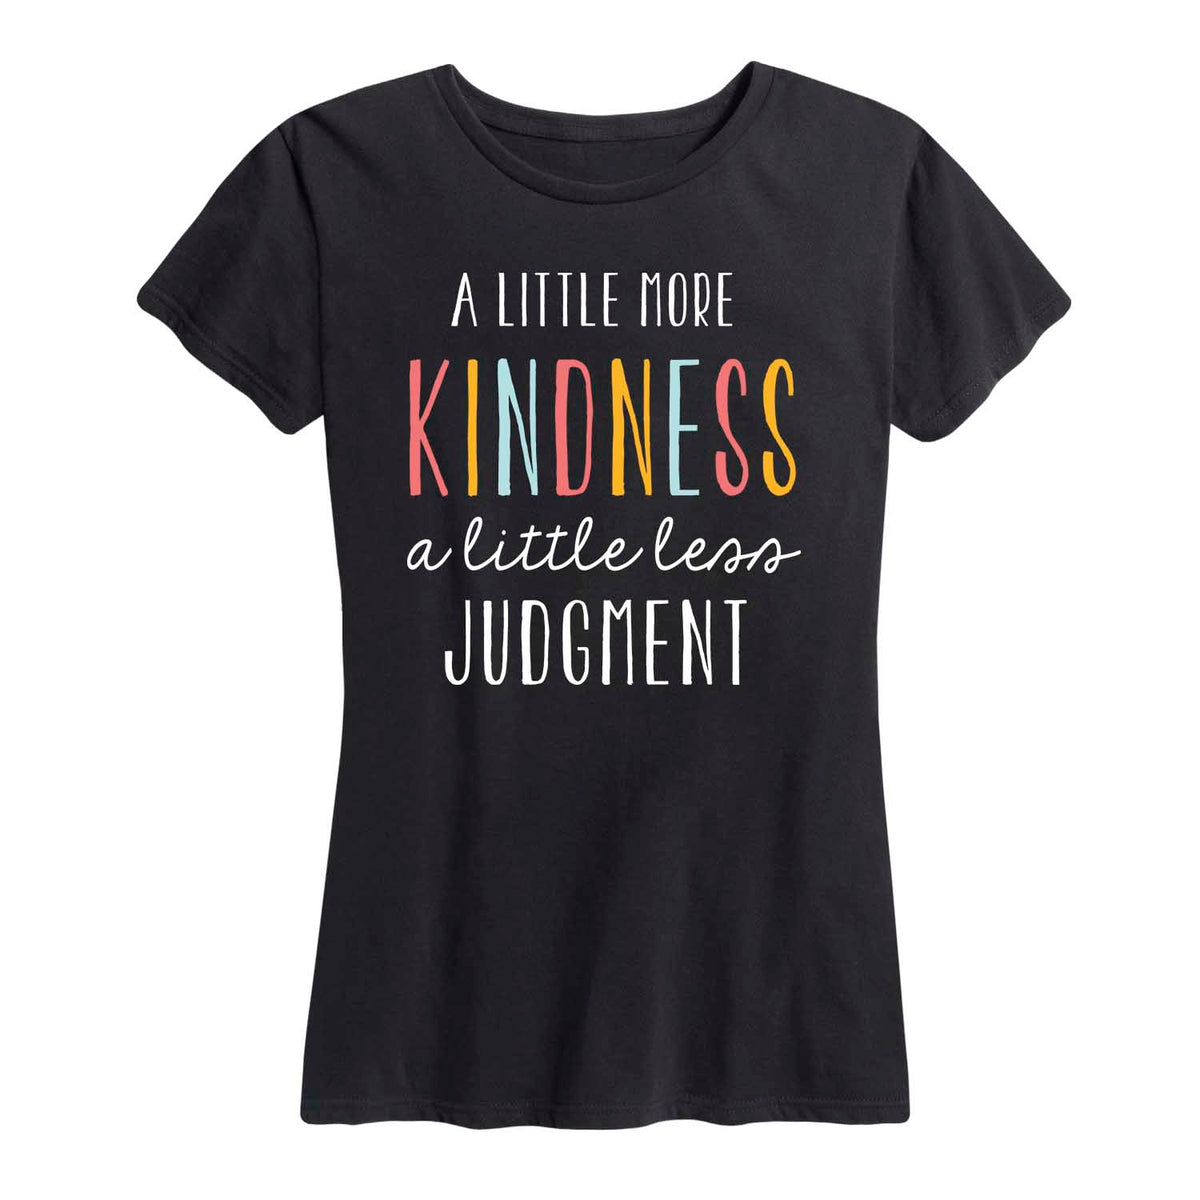 More Kindness Less Judgment - Women's Short Sleeve T-Shirt